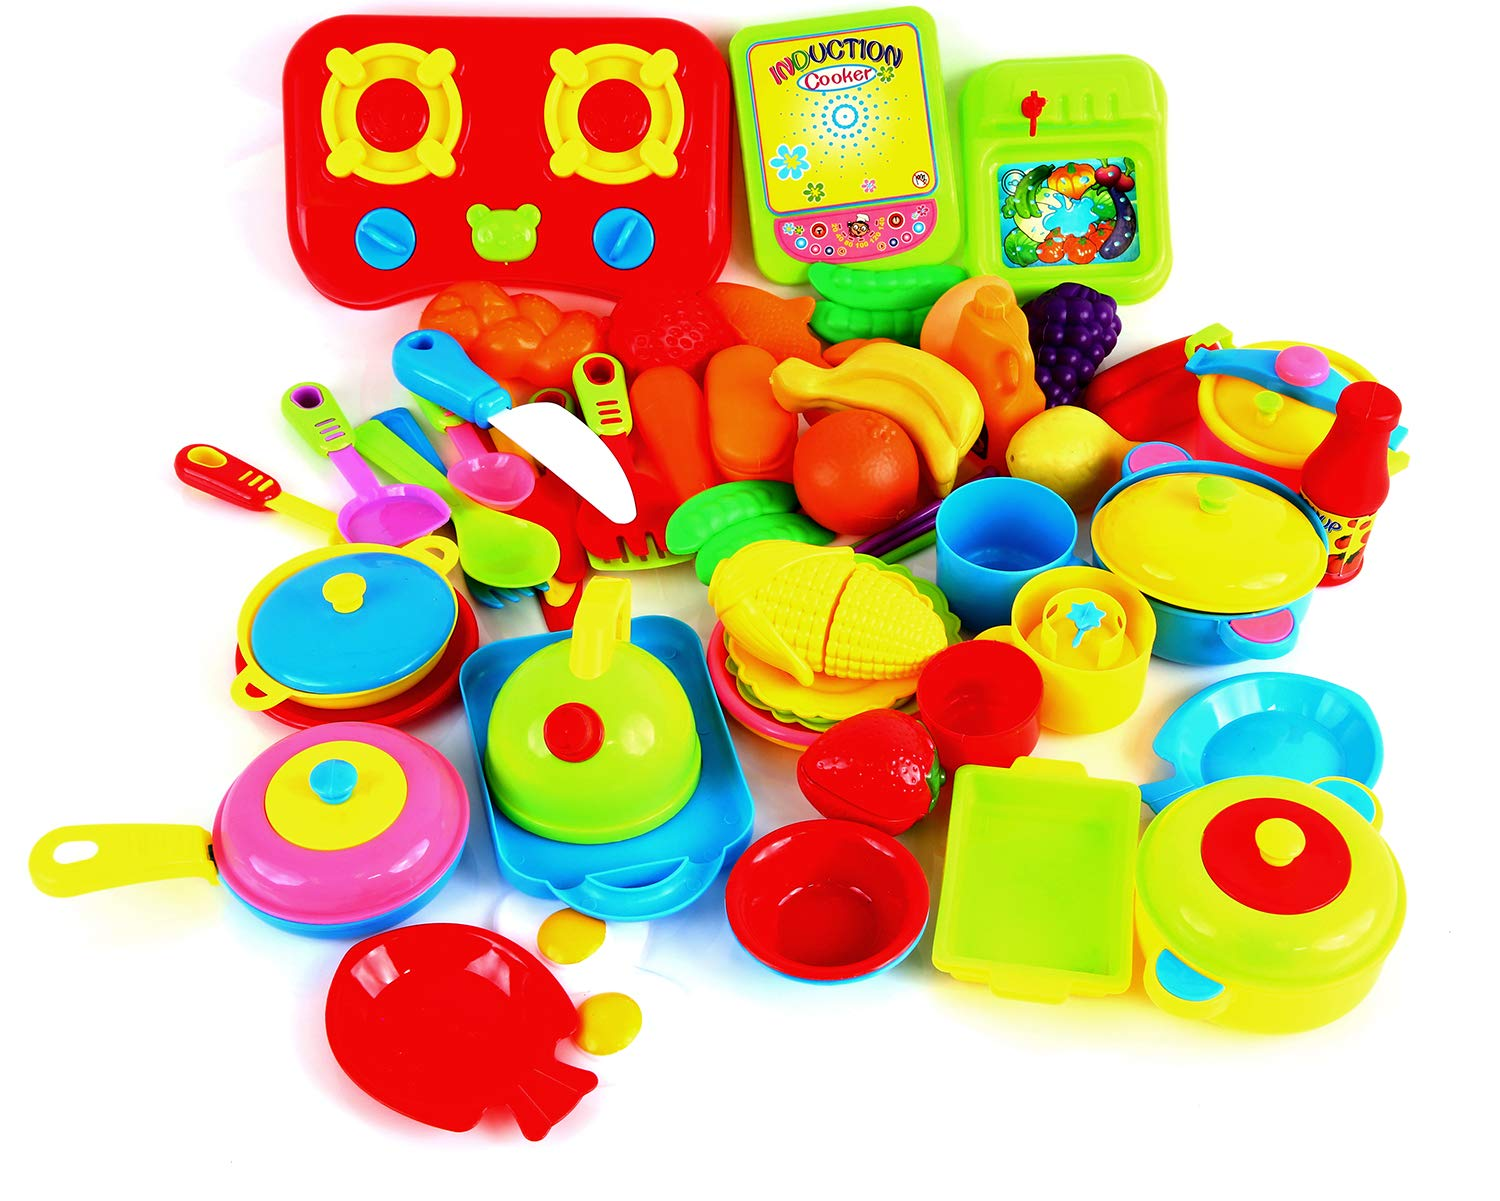 Fstop Labs 60 Packs Play Cookware Set, Kitchen Toys Set for Kids, Pretend Play Cooking Toys Set, Kids Tableware Dishes Playset for Kids Age 3 Years and Up Random Styles